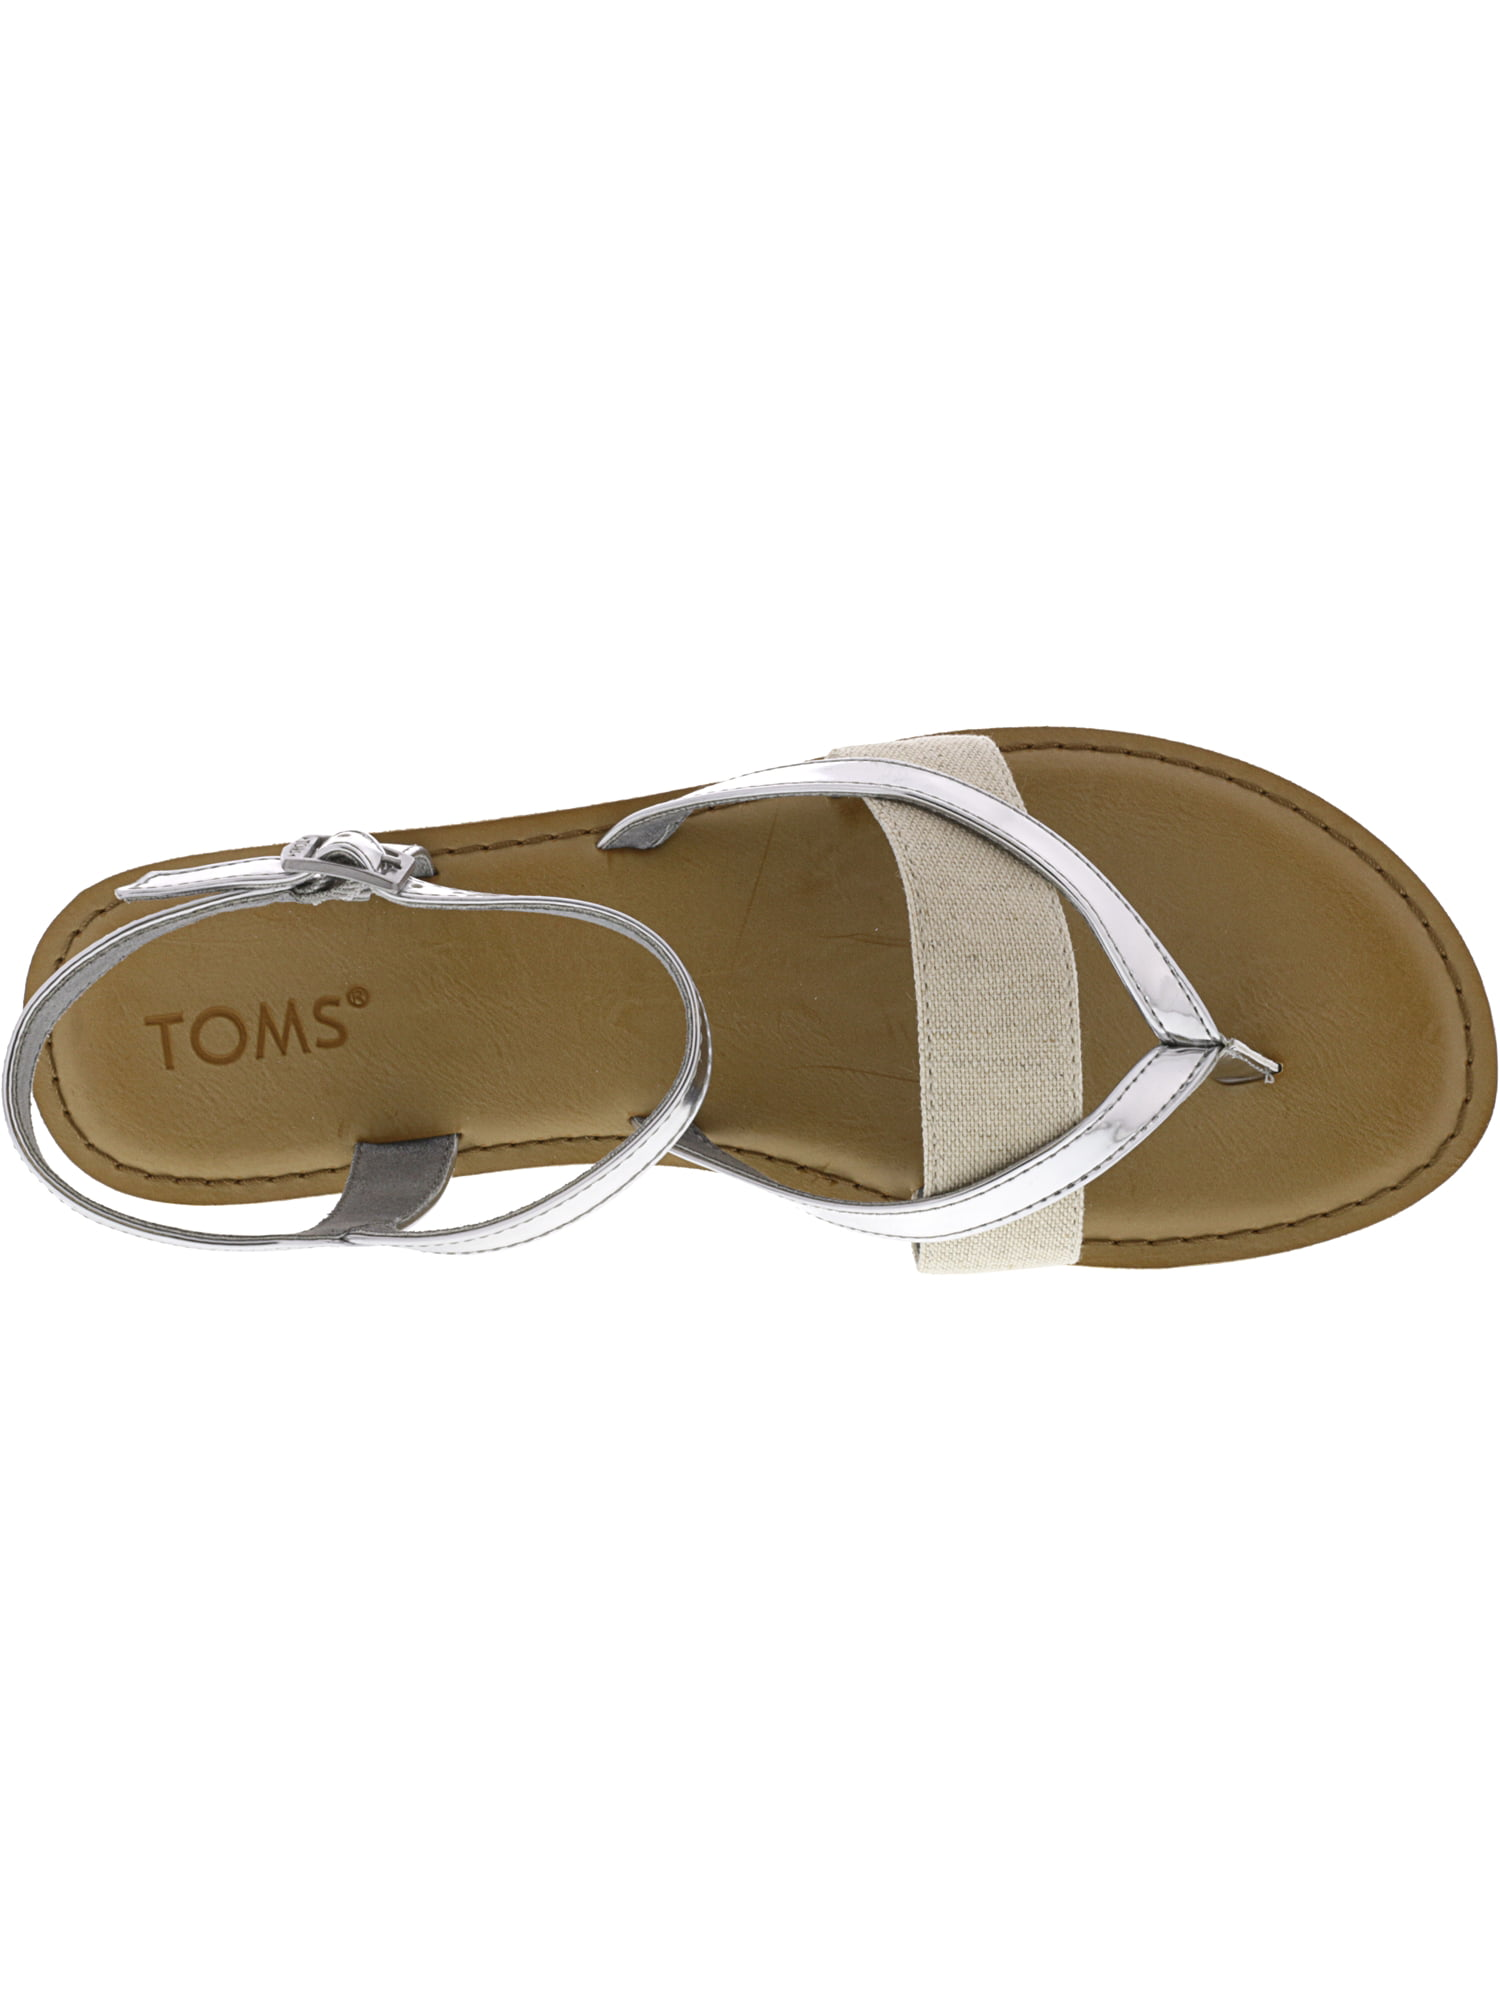 9276a369785887 Toms - Toms Women s Lexie Specchio And Hemp Rose Gold Sandal - 8.5M -  Walmart.com